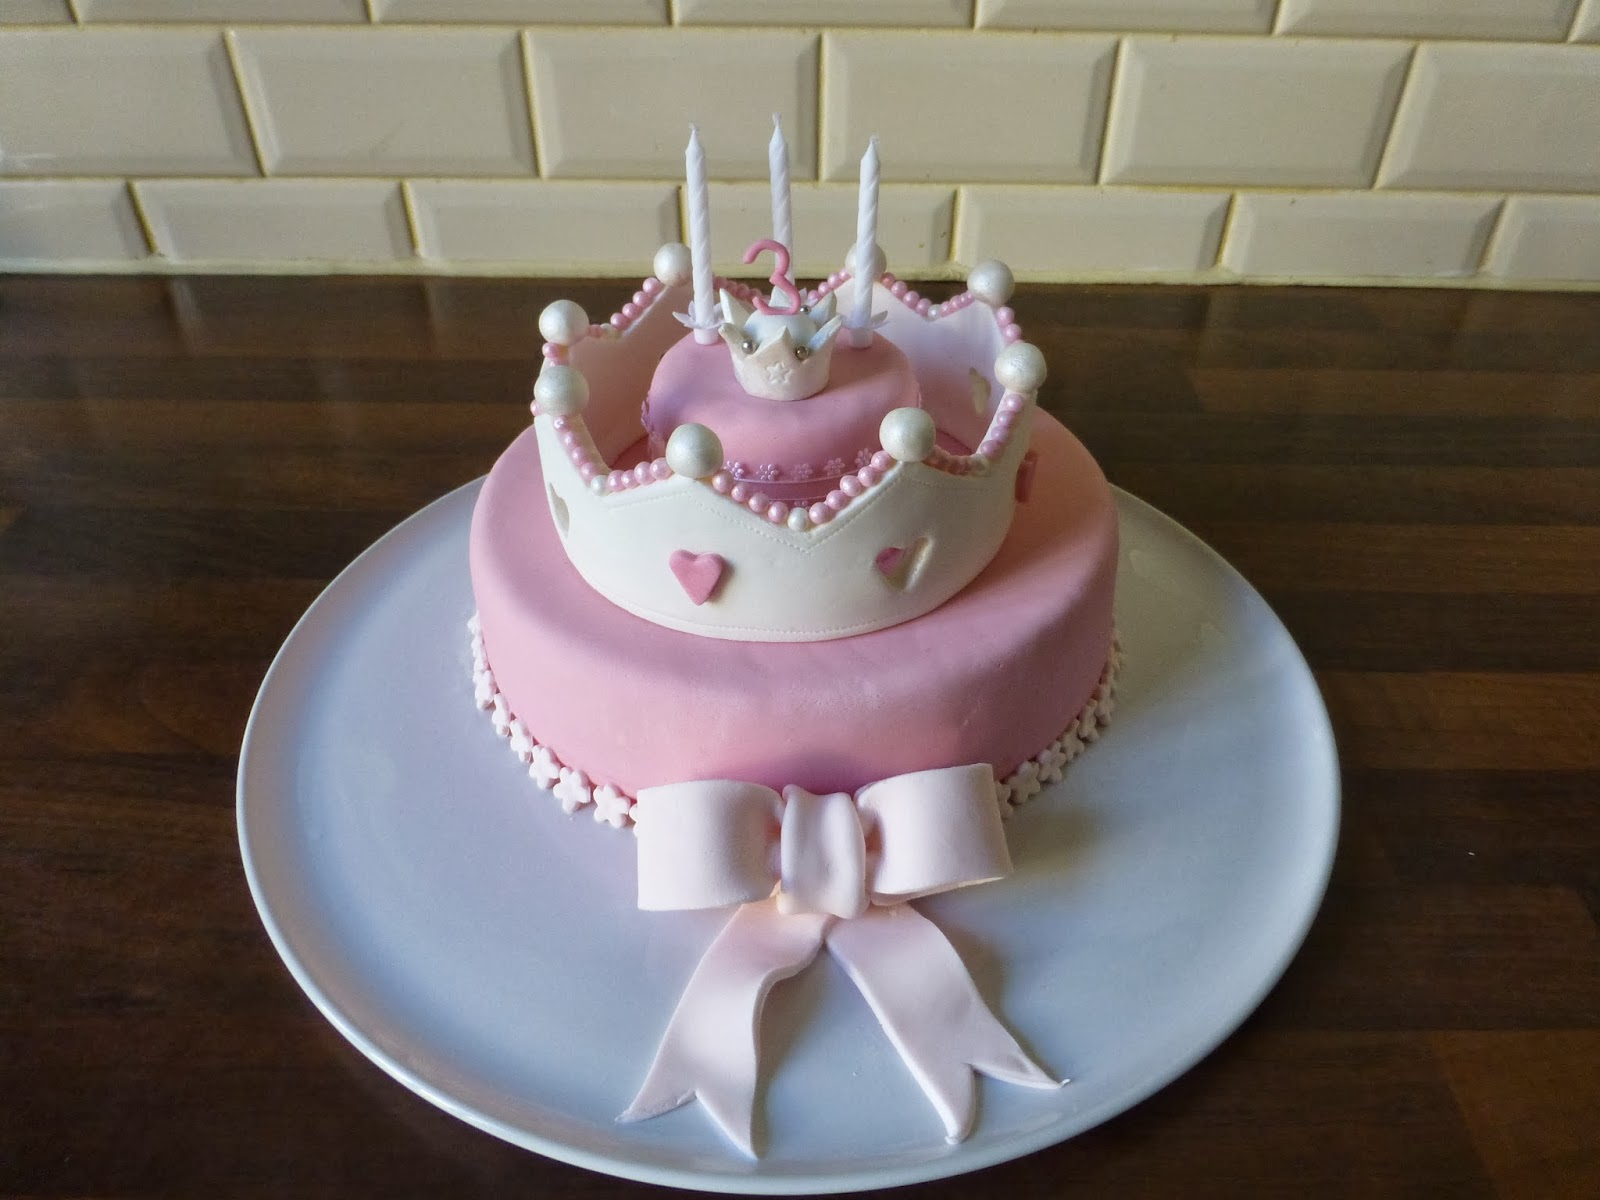 Sweet designs by Gabriela: Princess crown cakes